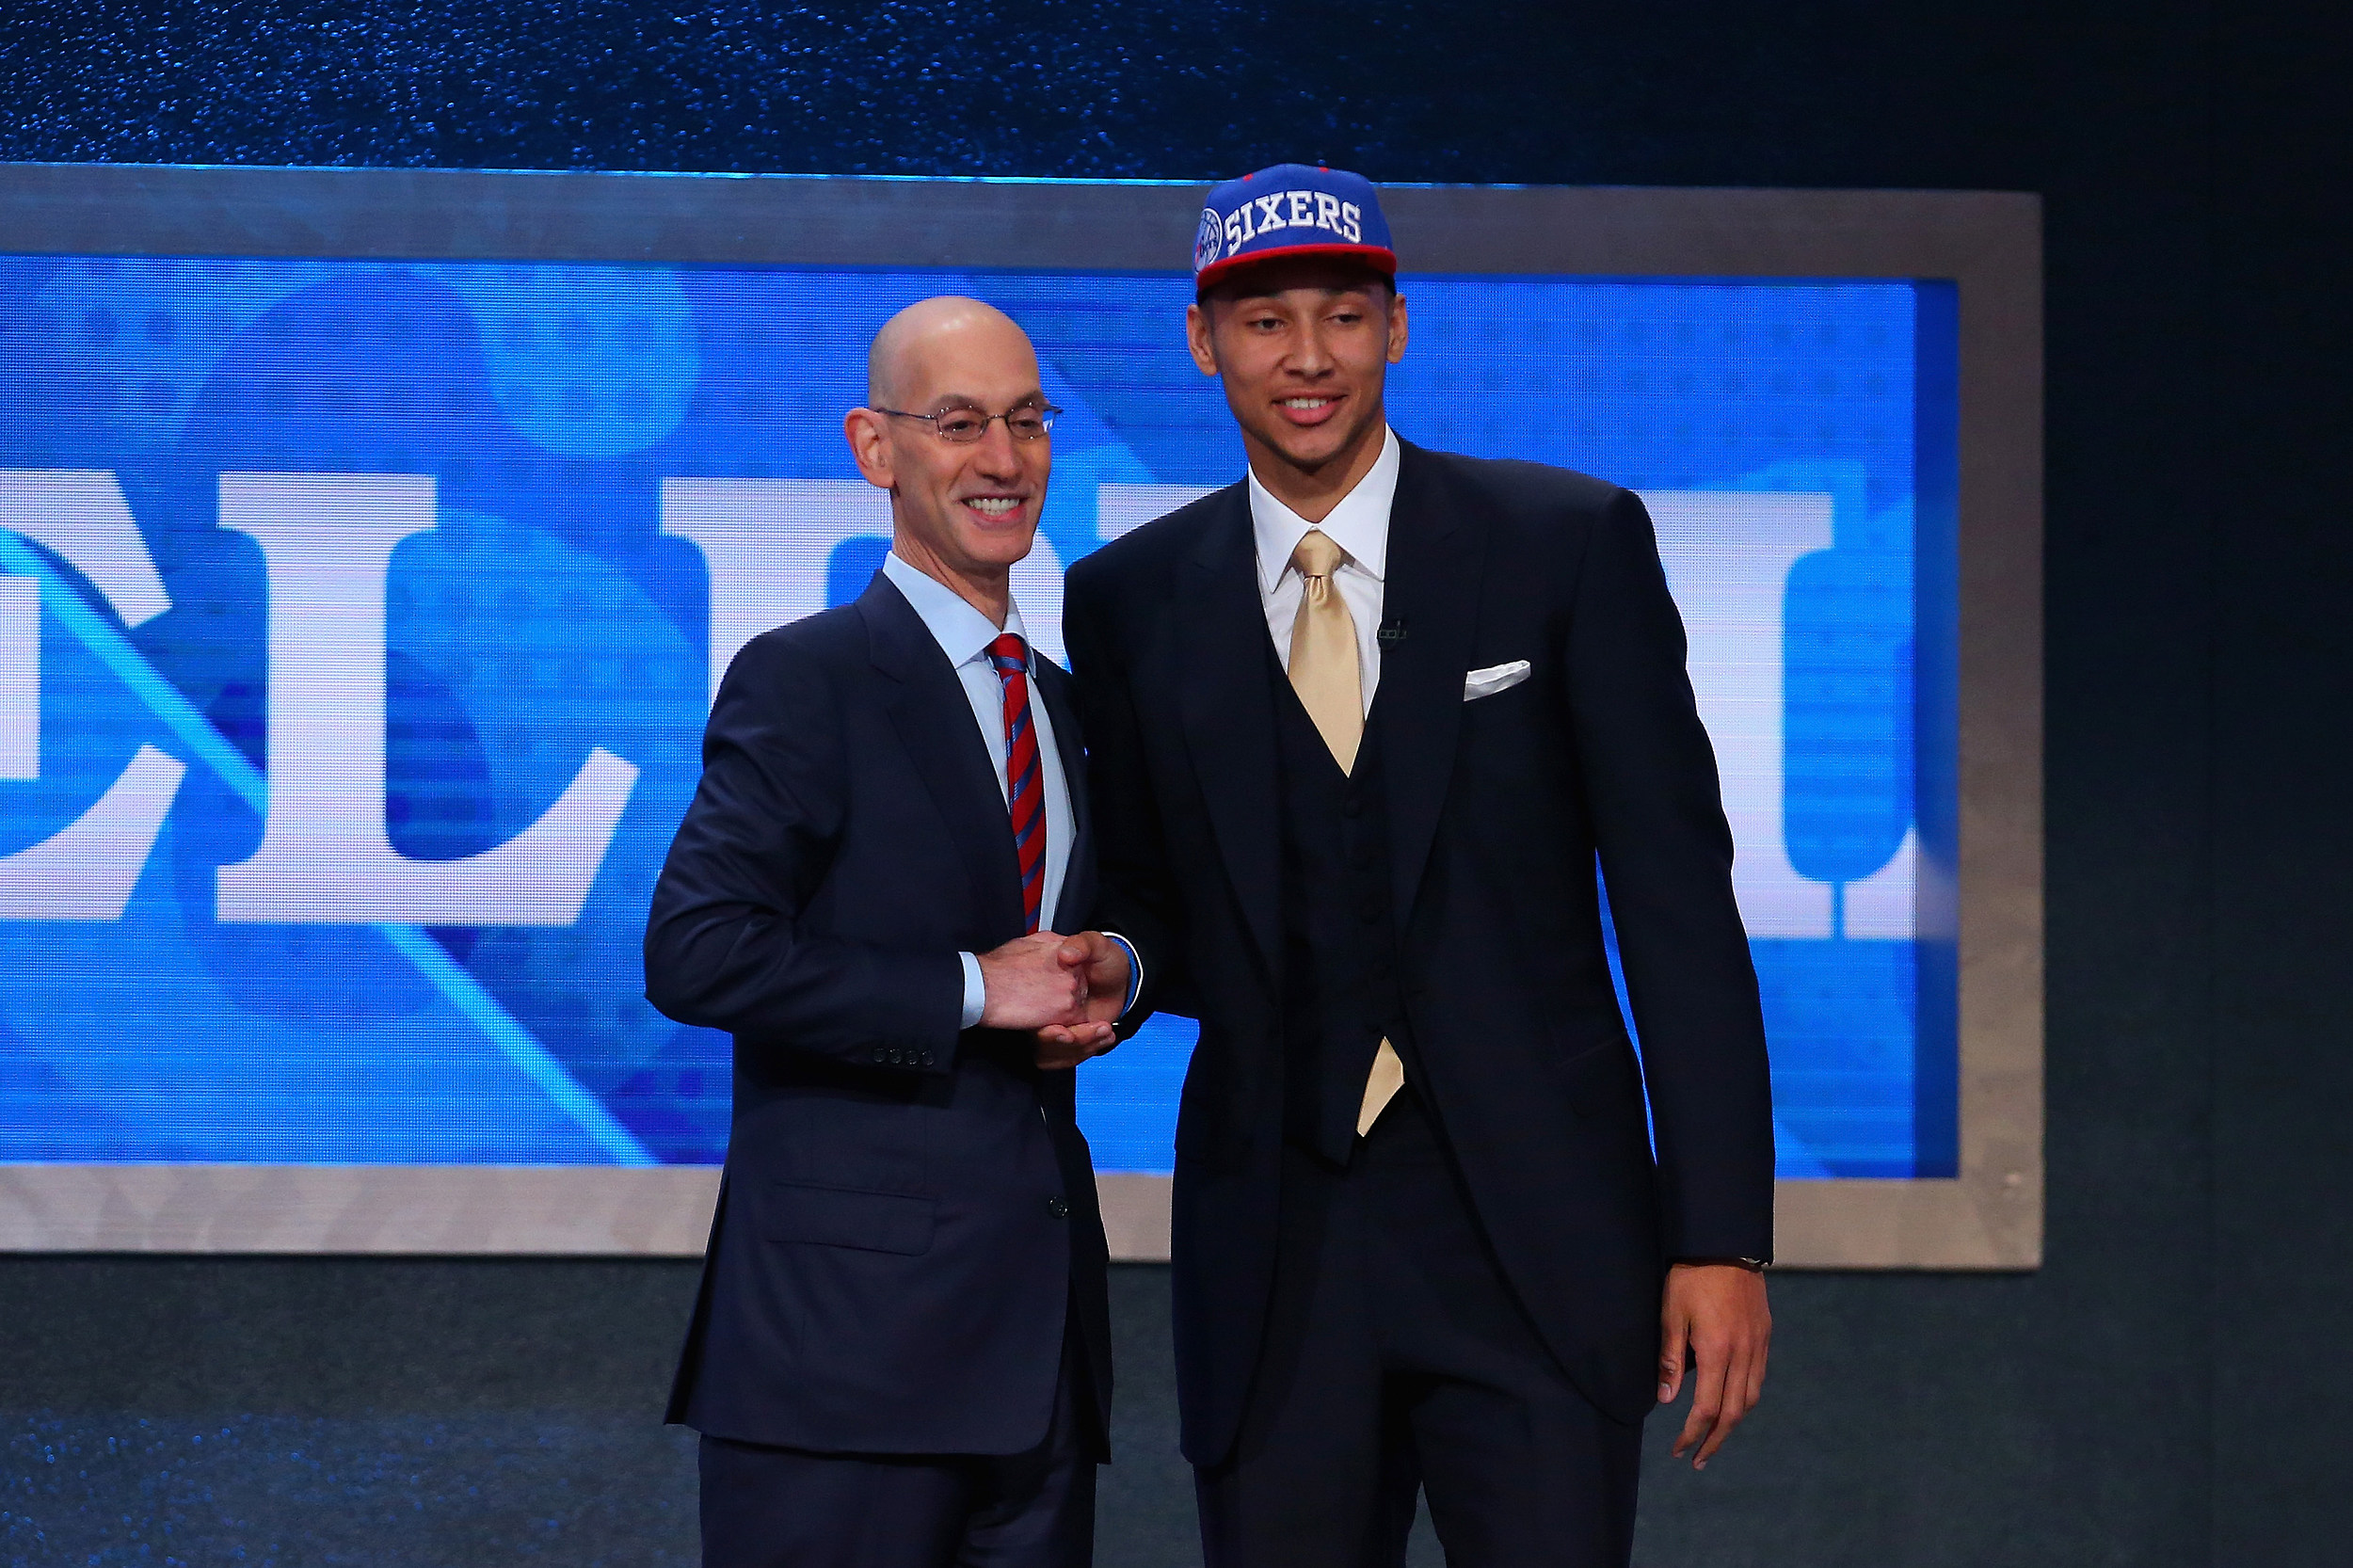 LSU's Ben Simmons selected No. 1 in 2016 NBA Draft by 76ers